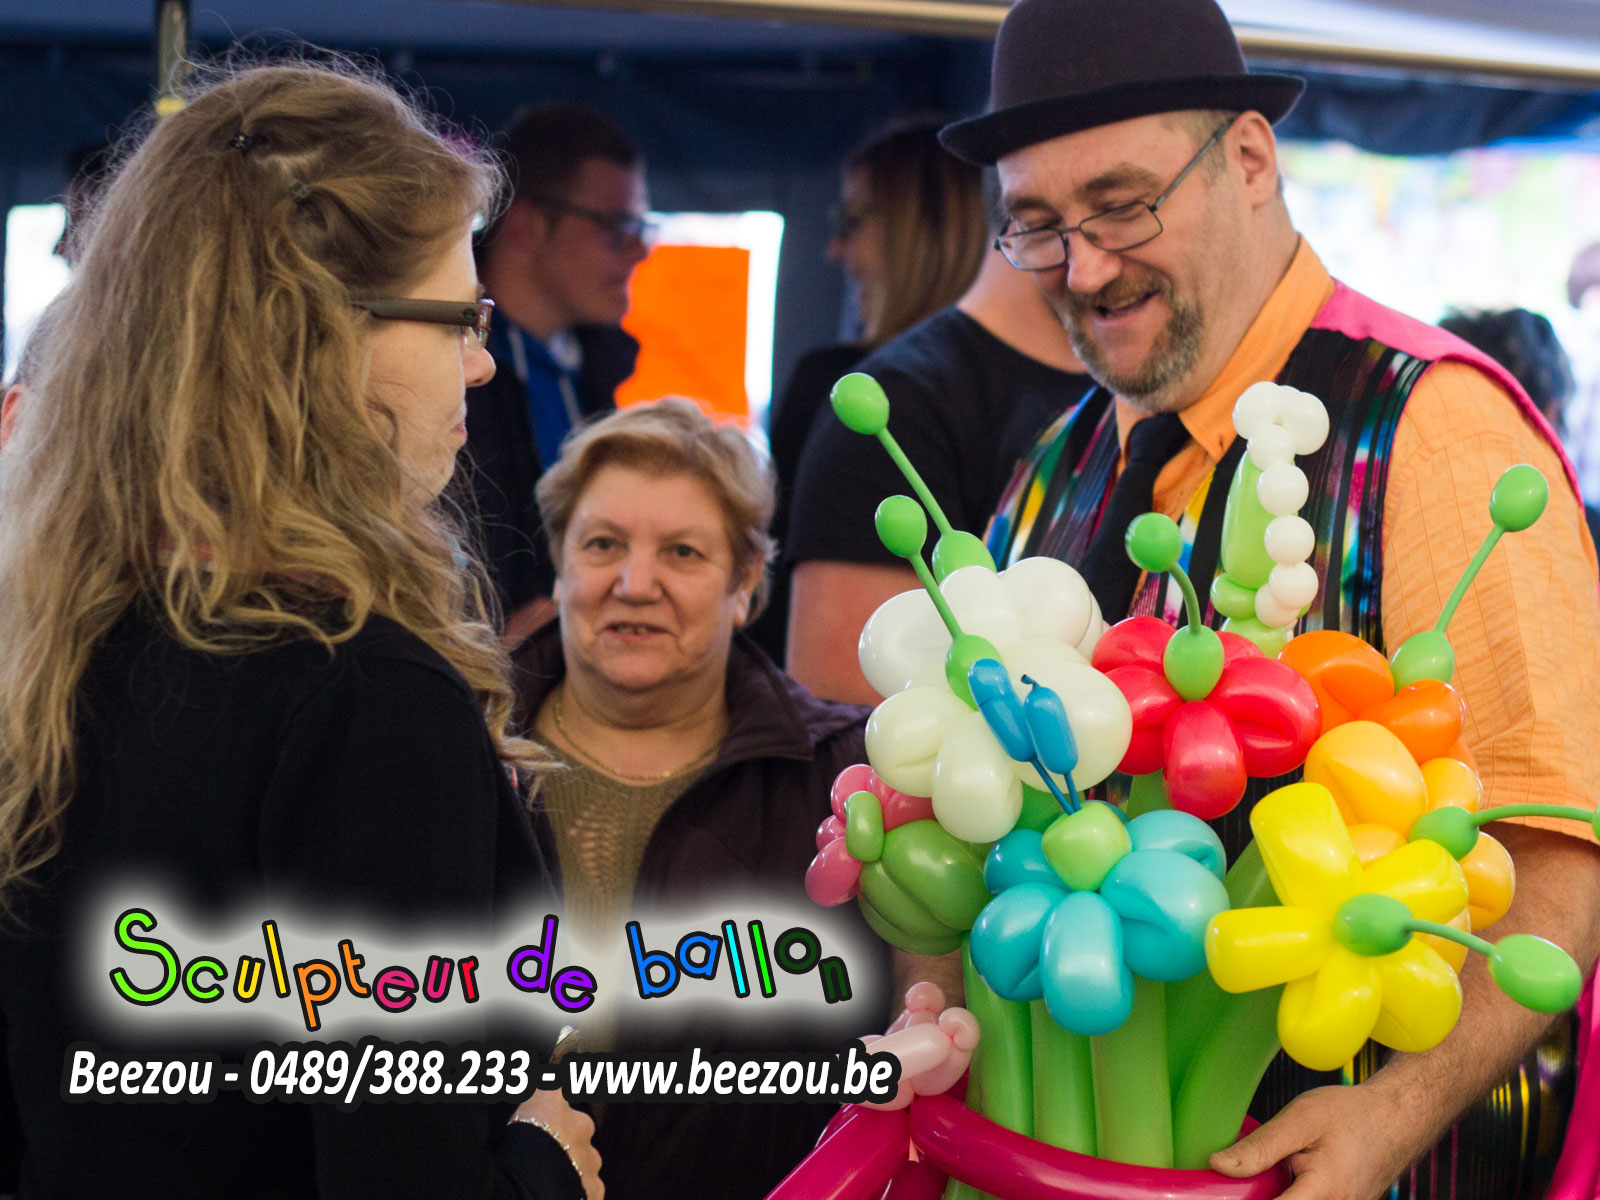 sculpteur de ballon manage